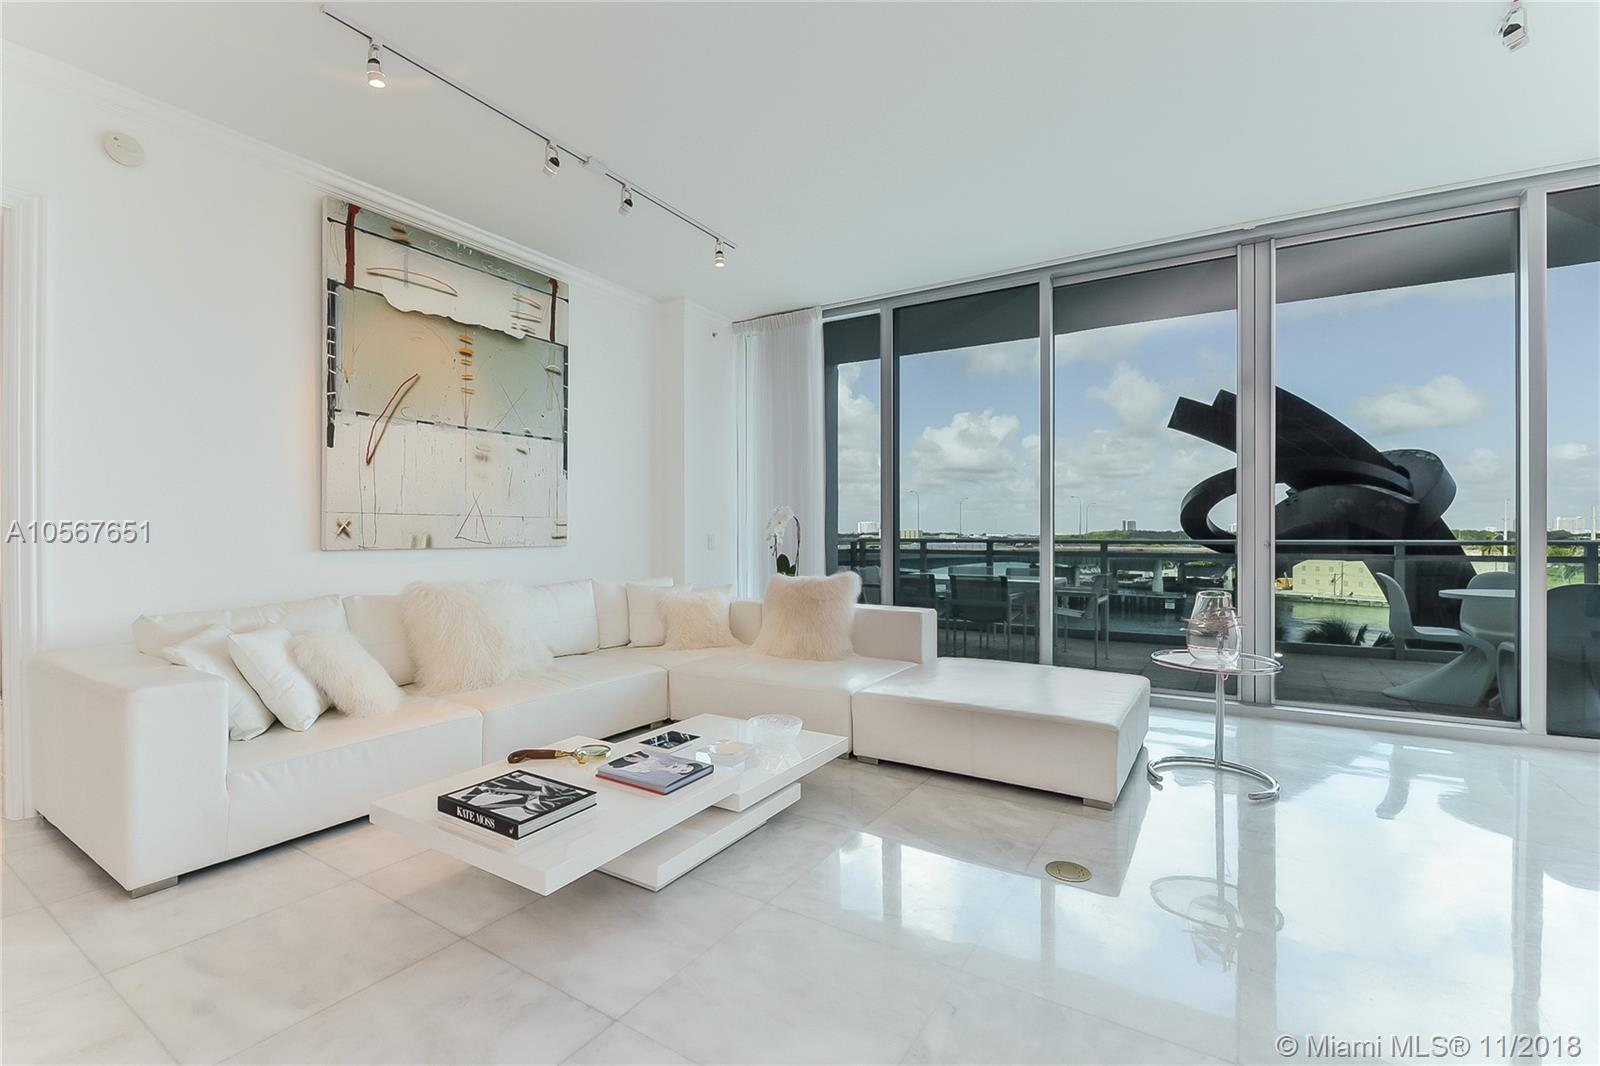 10295 Collins Ave 206, Bal Harbour, FL 33154